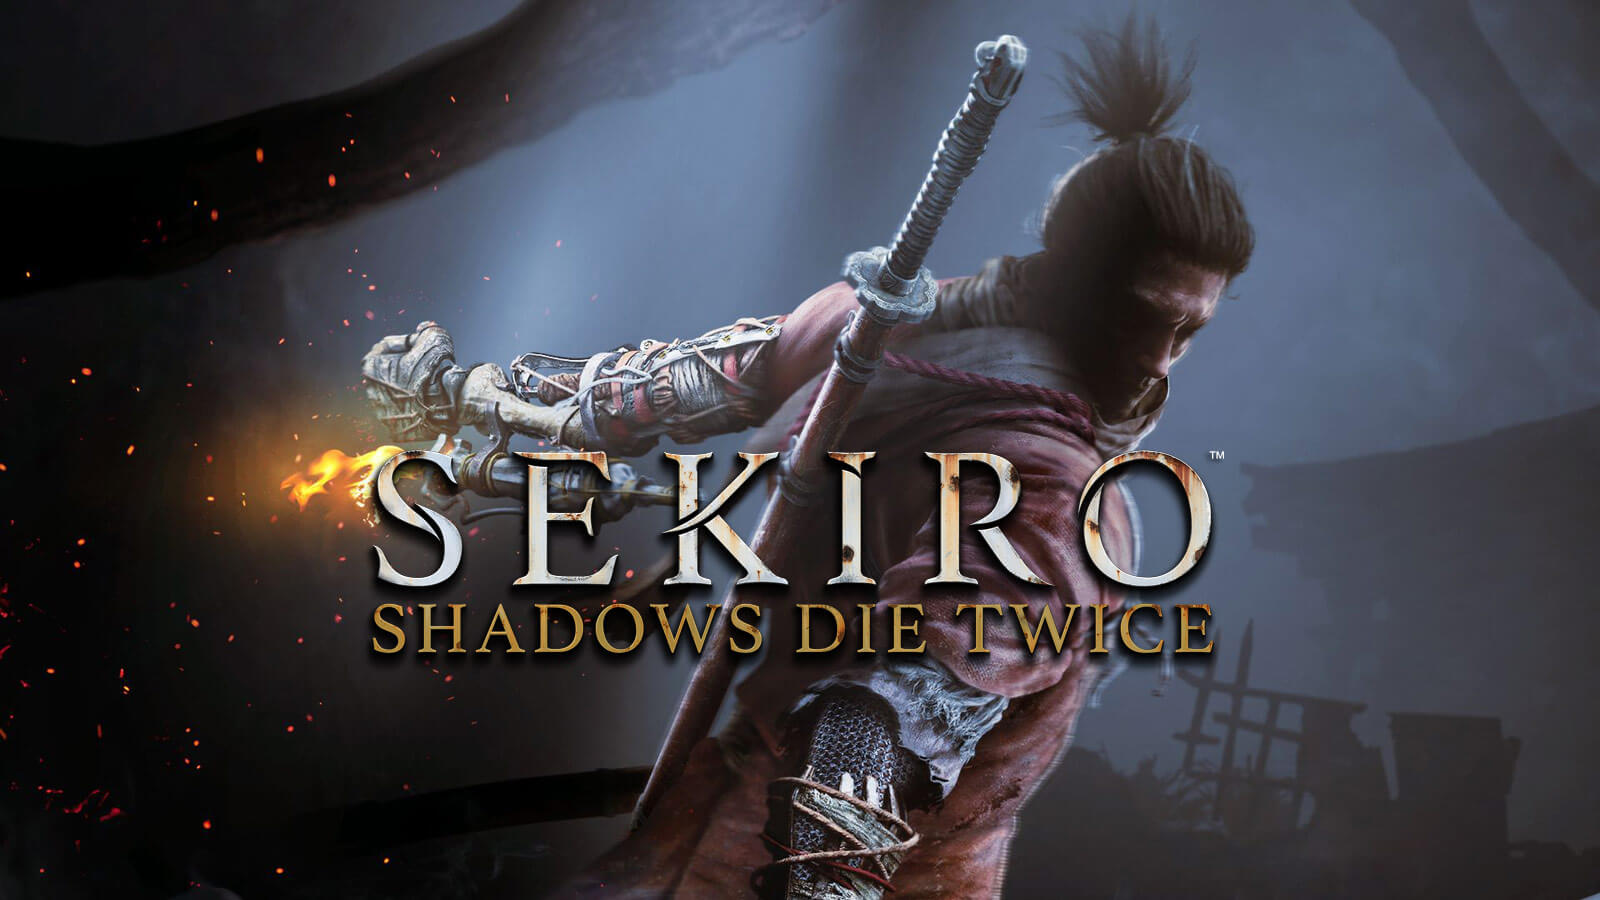 Video Games & Consoles Shadows Die Twice Skin For Xbox One X Console And 2 Controllers Have An Inquiring Mind Sekiro Faceplates, Decals & Stickers